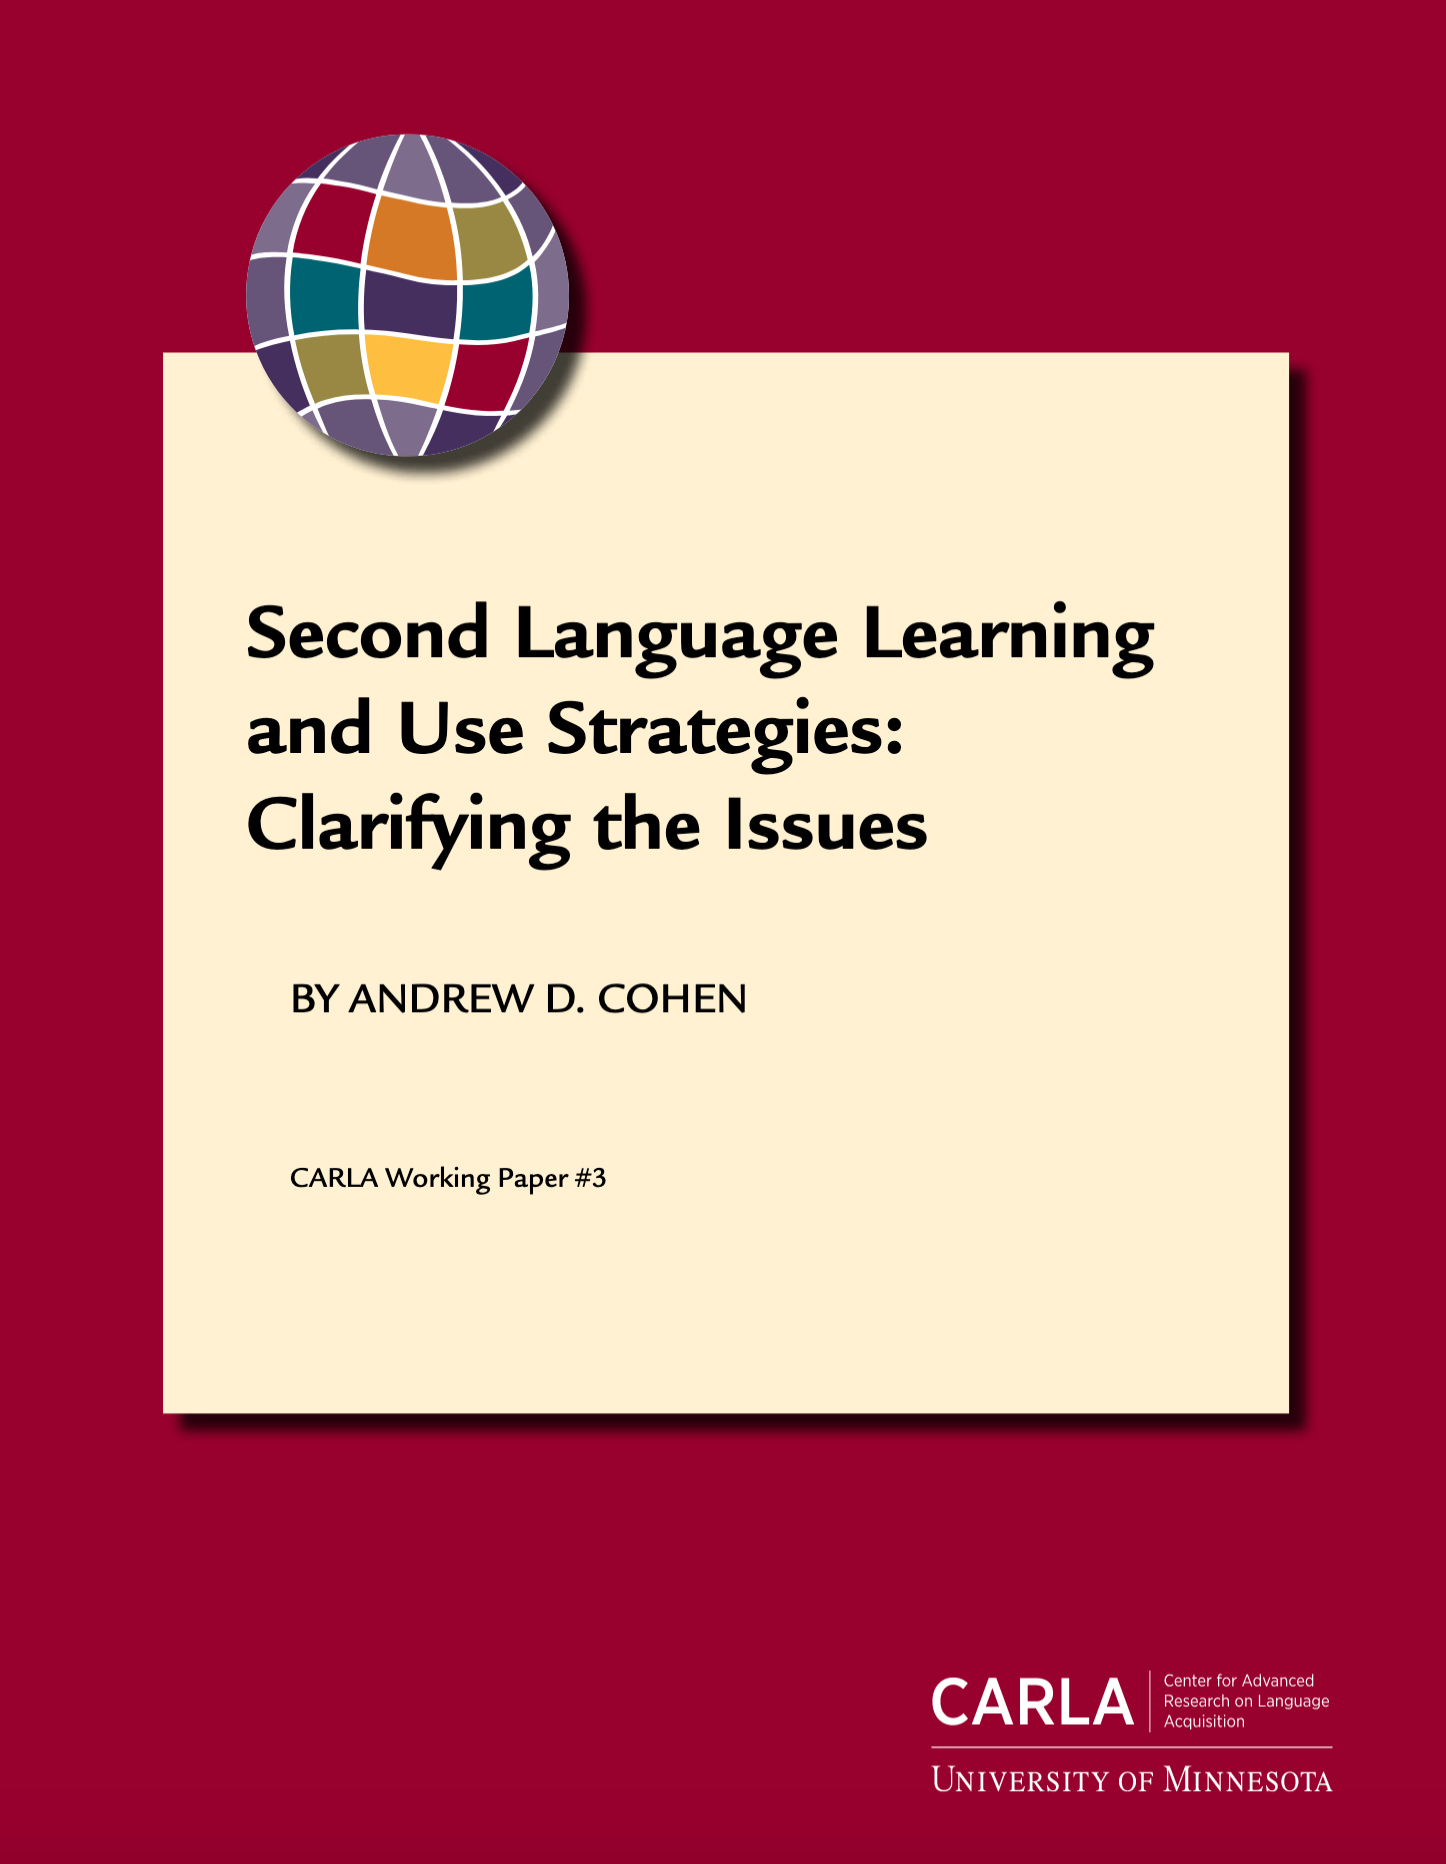 Second Language Learning and Use Strategies